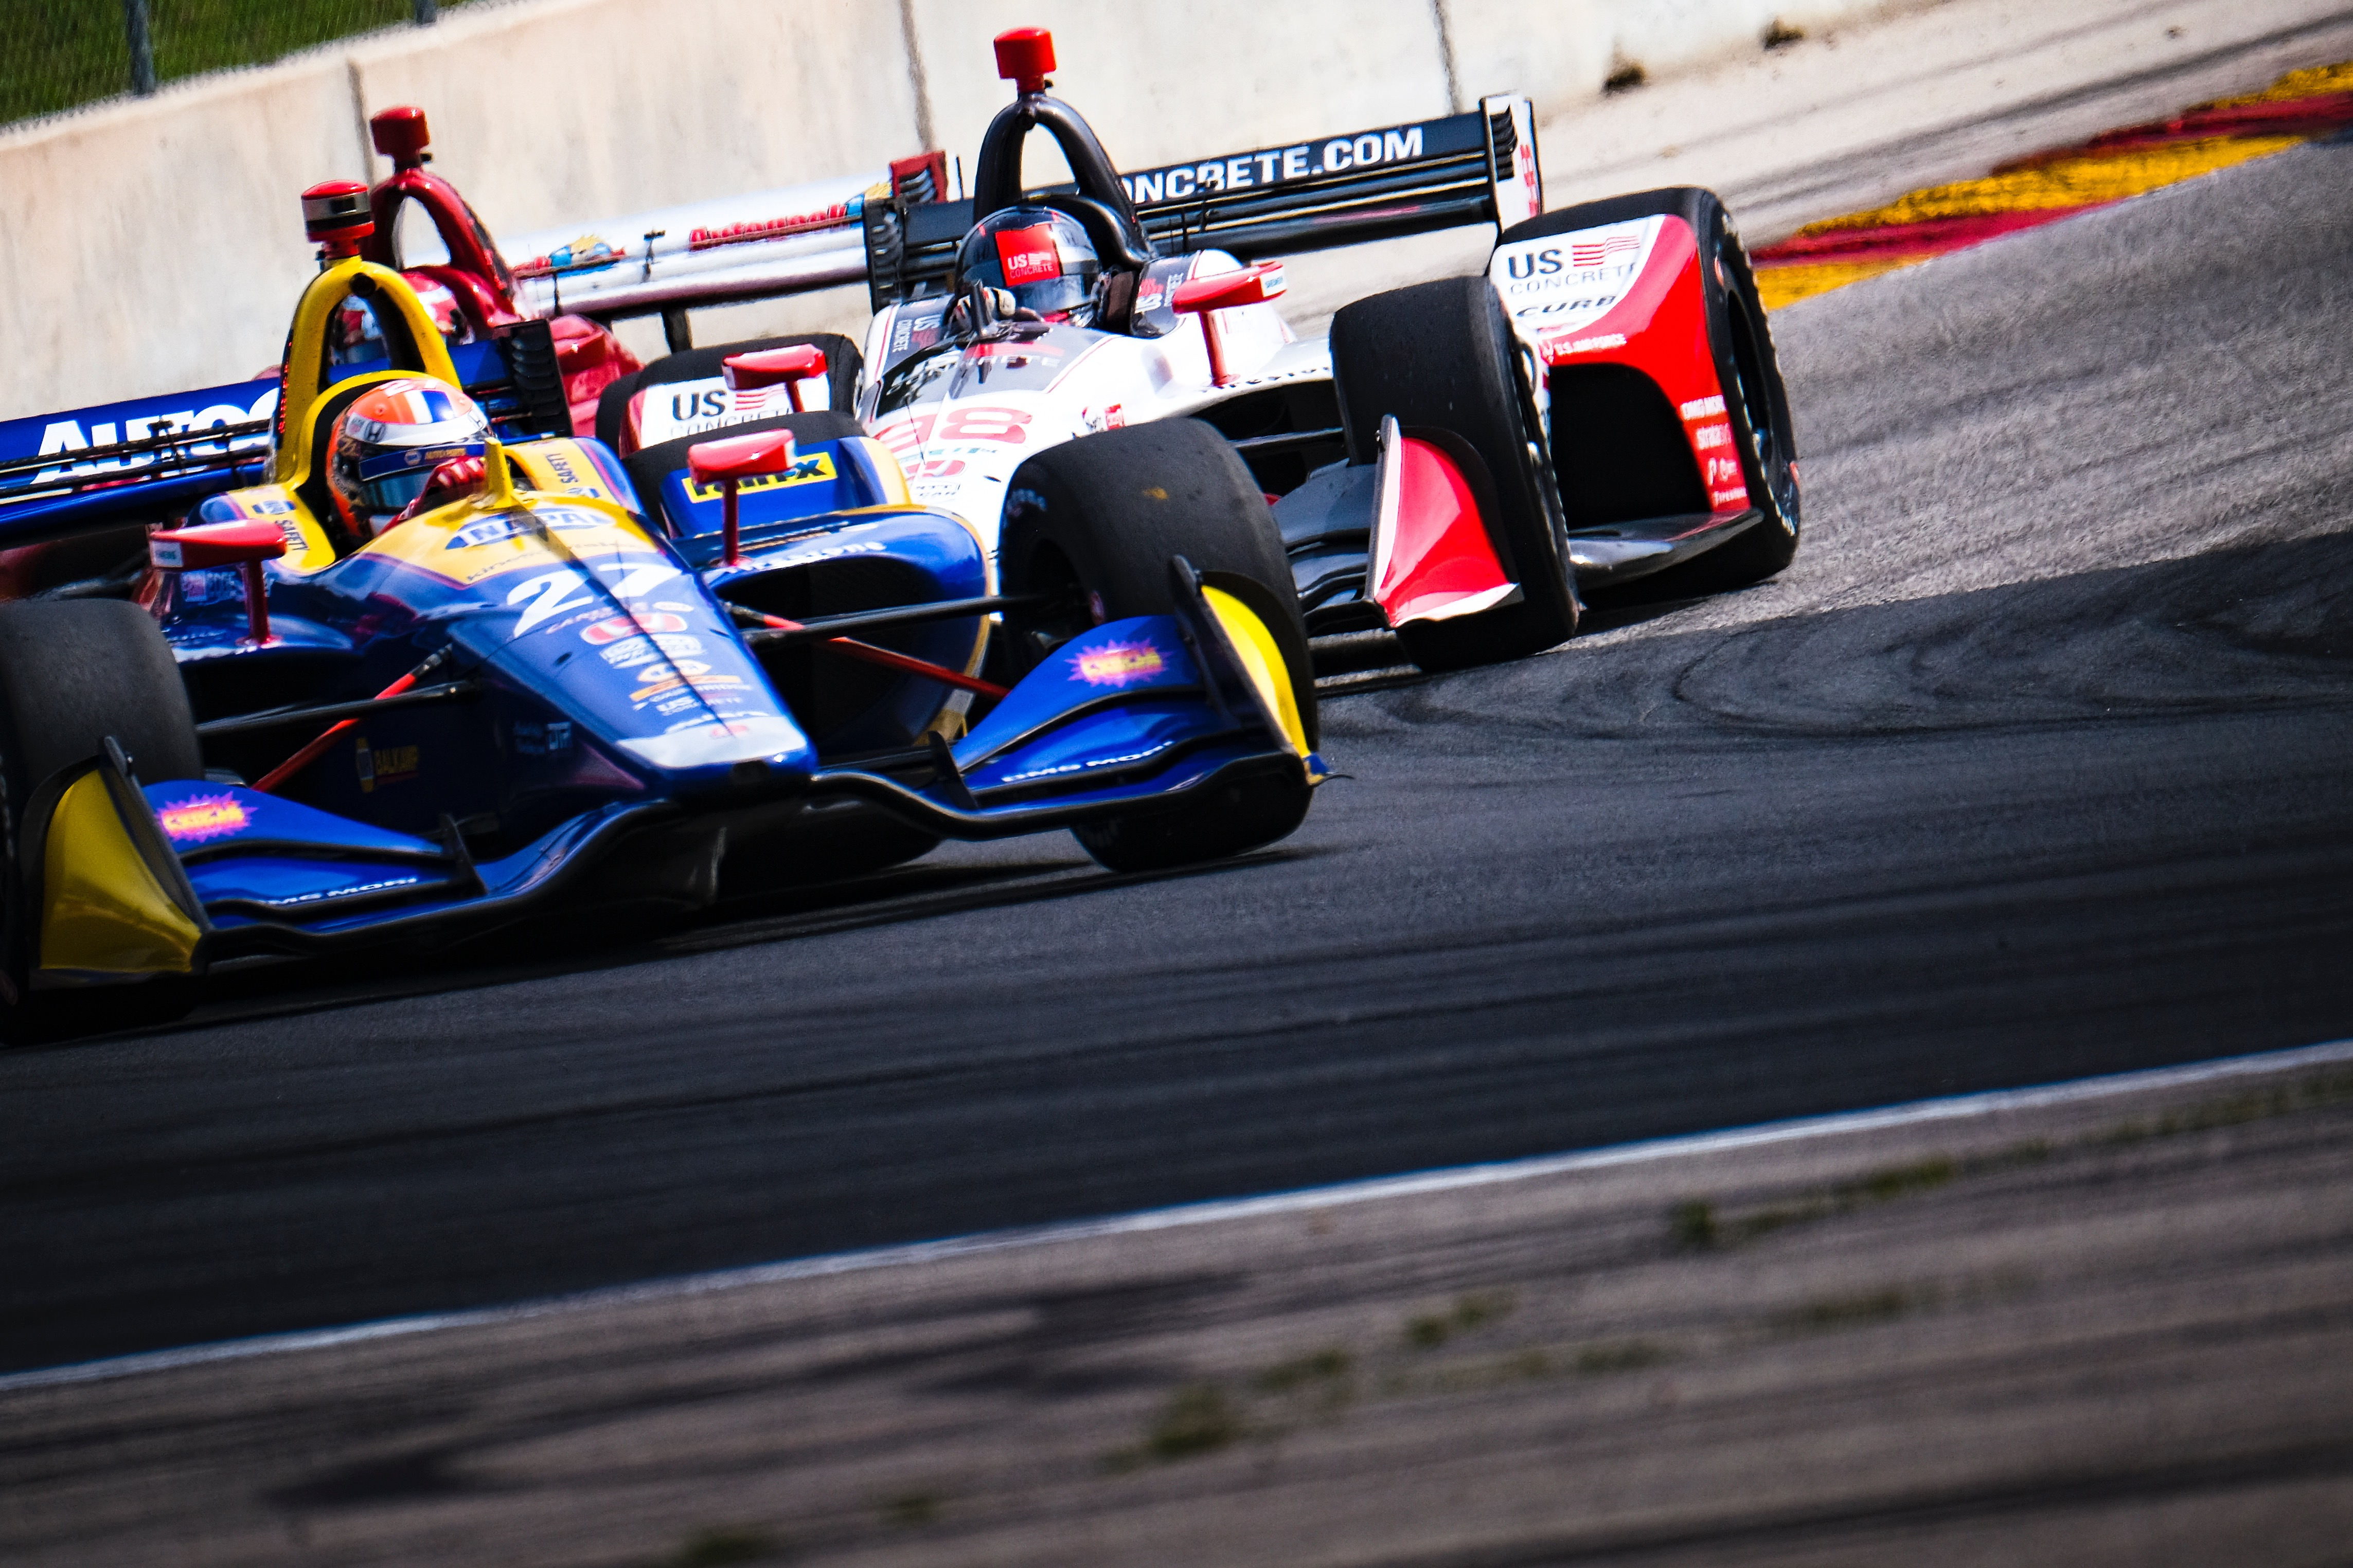 Alexander Rossi and Marco Andretti. © [Jamie Sheldrick/ Spacesuit Media]